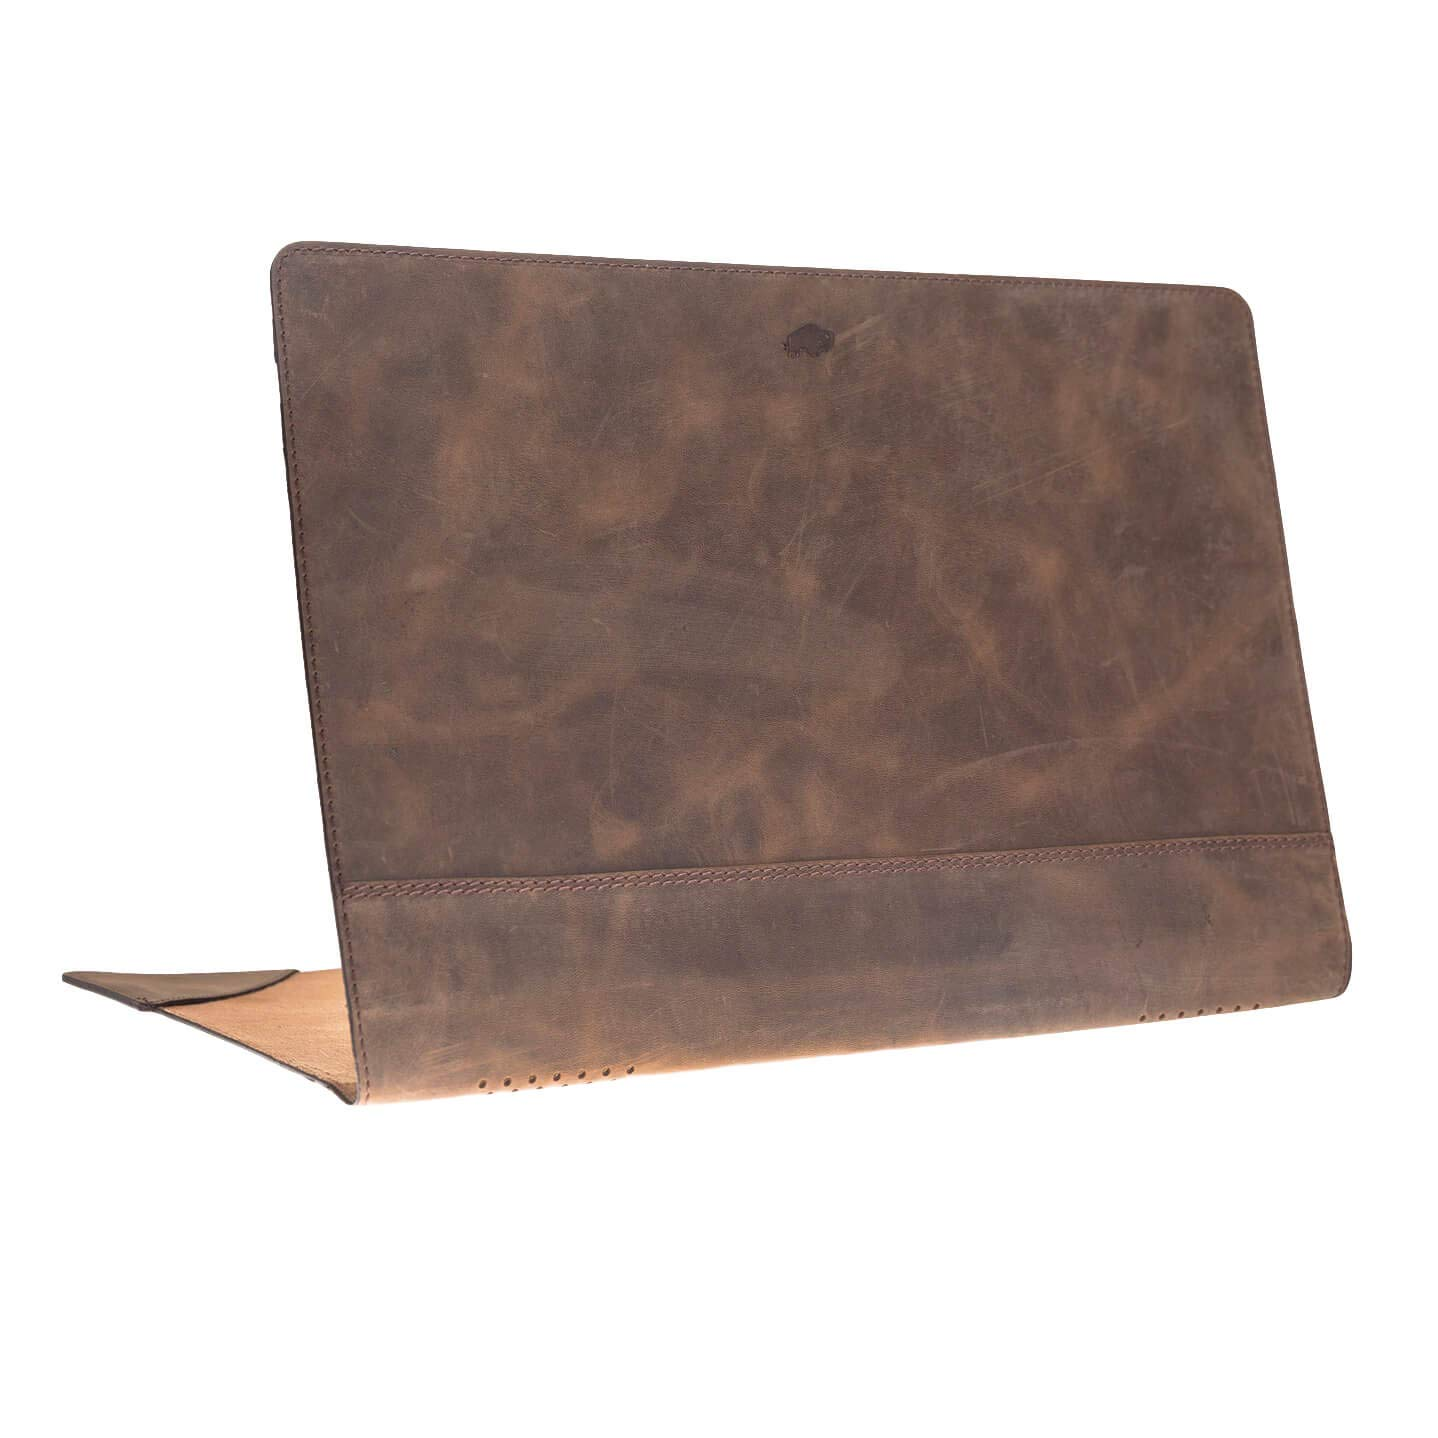 Apple MacBook Pro 13'' Burkley Soft Cover Case, Handmade and Genuine Leather for Apple MacBook Pro 13'' (Distressed Antique Coffee) by Burkley Case (Image #1)